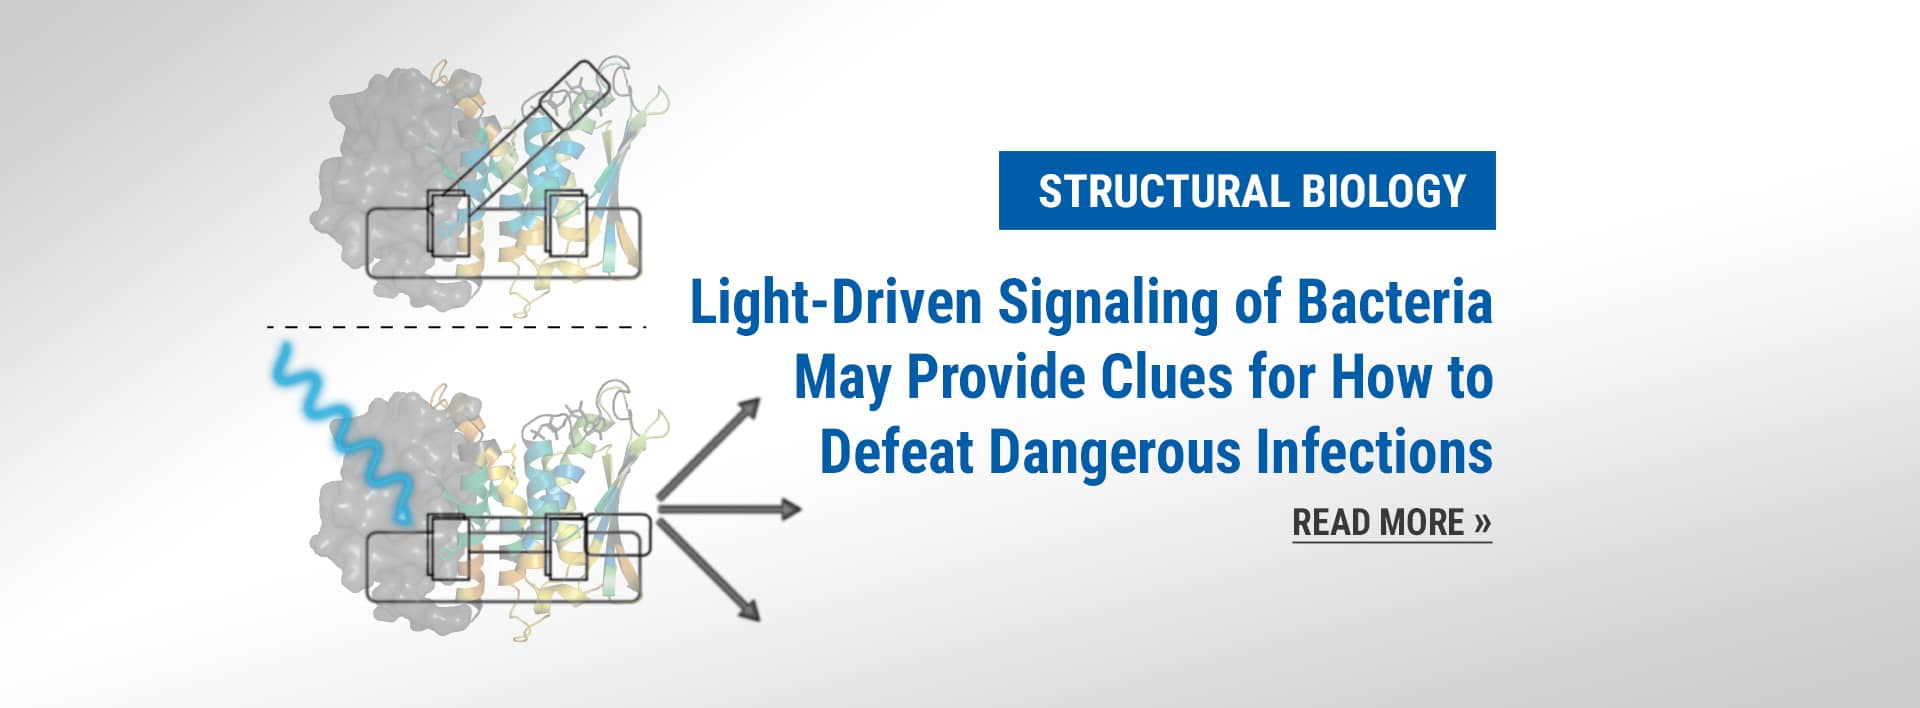 Structural Biology news: Light-Driven Signaling of Bacteria May Provide Clues for How to Defeat Dangerous Infections